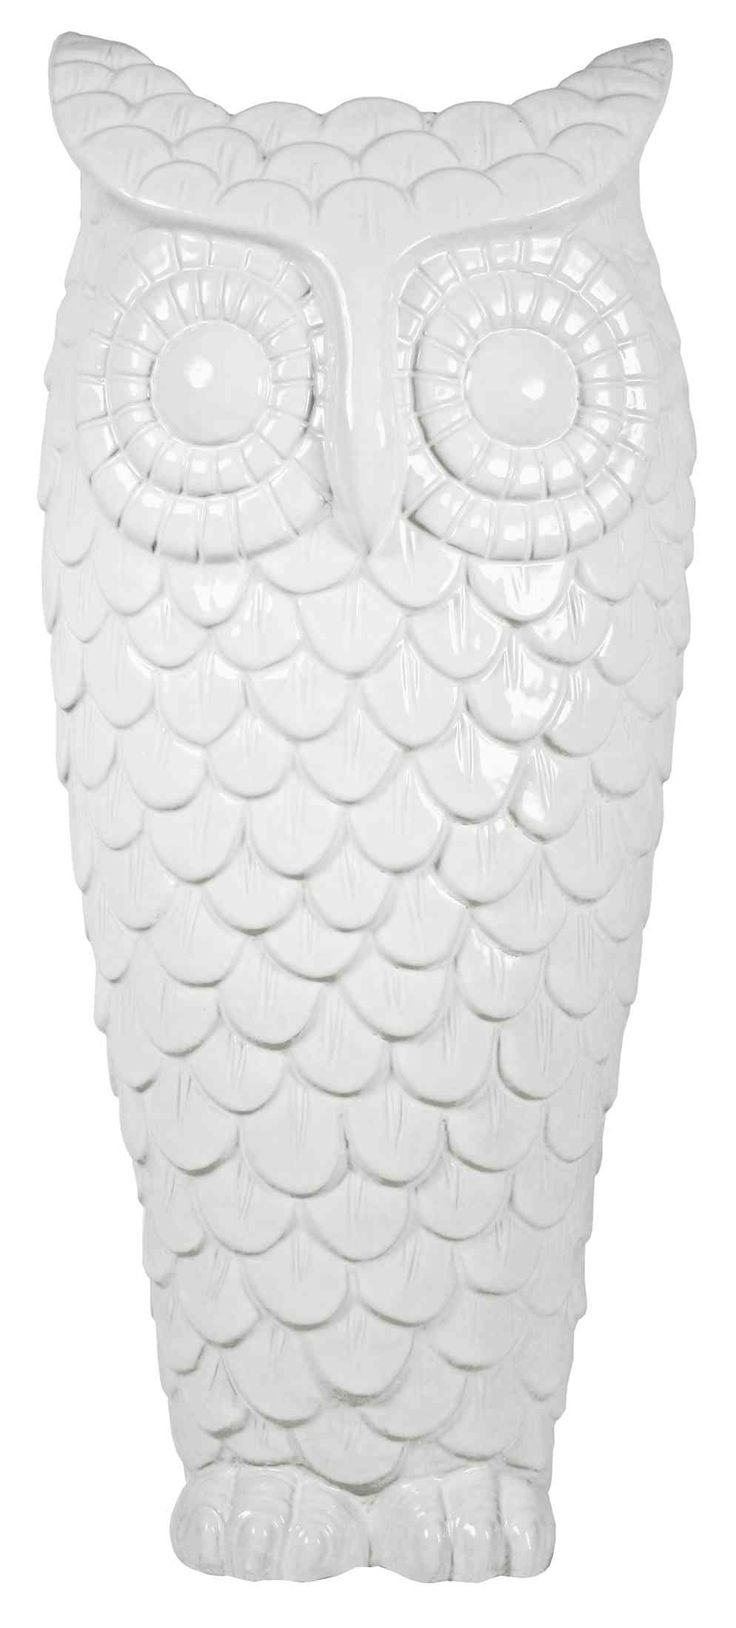 Pier 1 Owl Vase Of 16 Best Owls Images On Pinterest Owls Owl and Vase within Ceramic Owl Vase